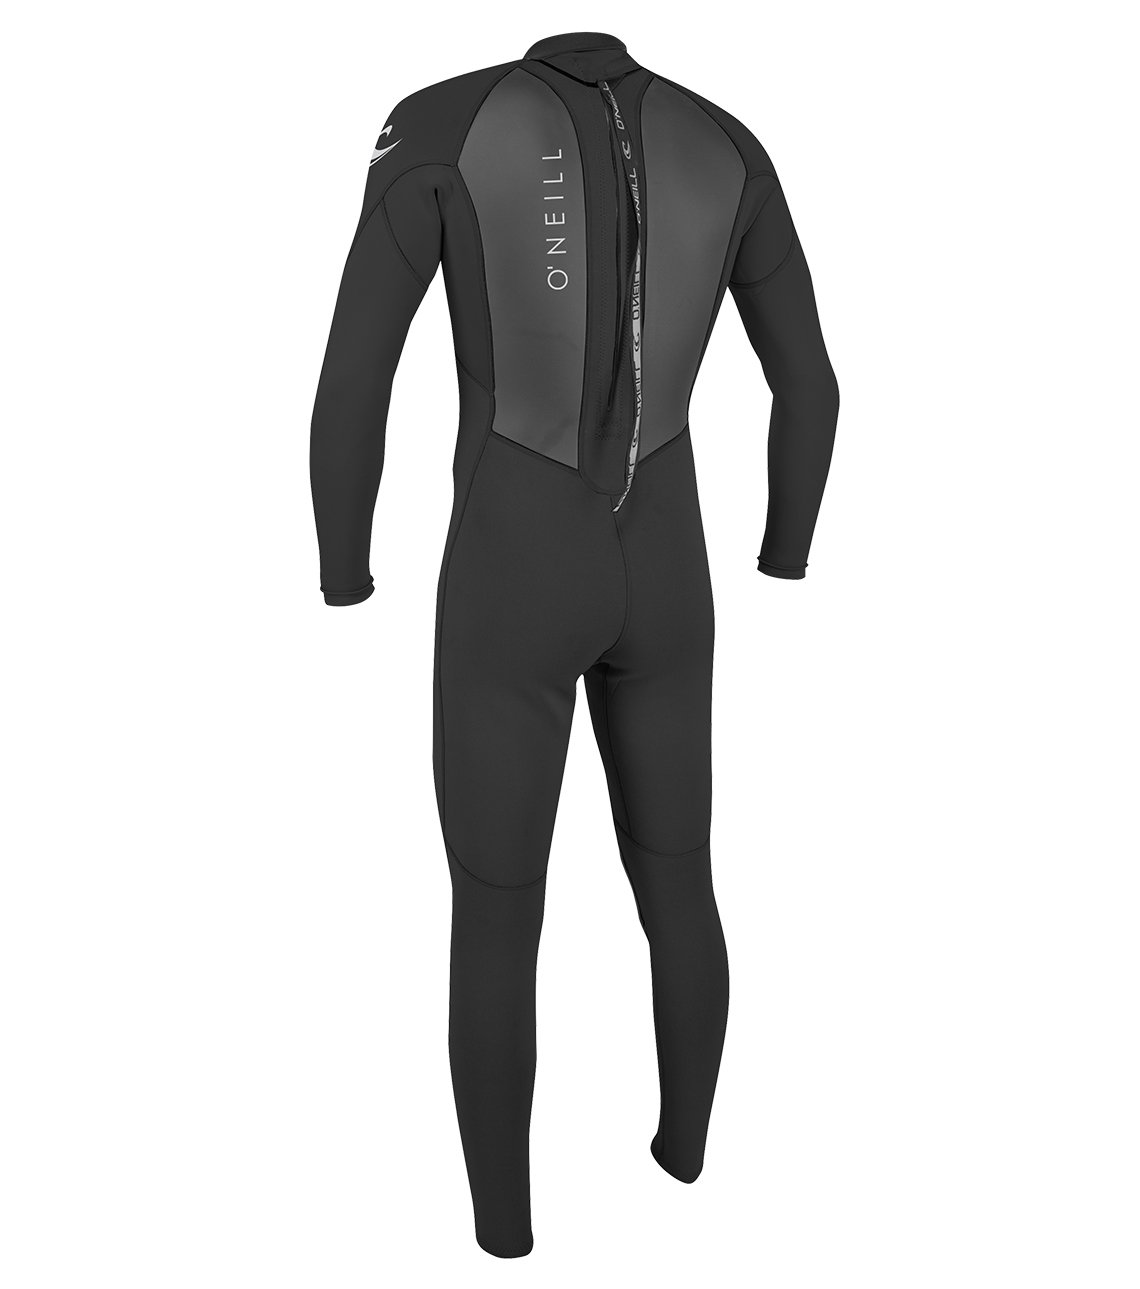 O'Neill Men's Reactor II 3/2mm Back Zip Full Wetsuit, Black, Small by O'Neill Wetsuits (Image #2)